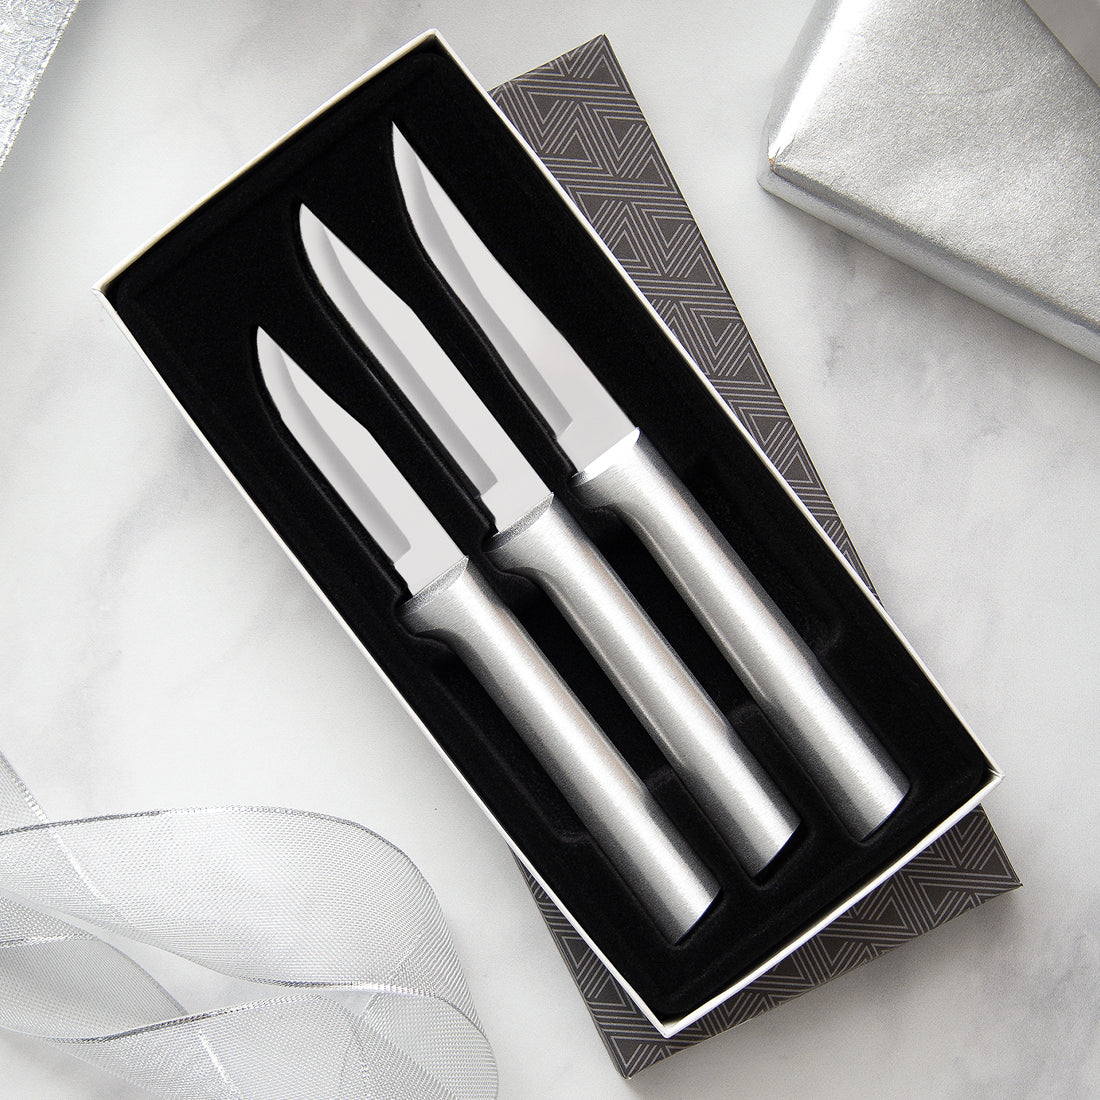 Paring knives Galore Gift Set with silver handles with three paring knives in gift box.